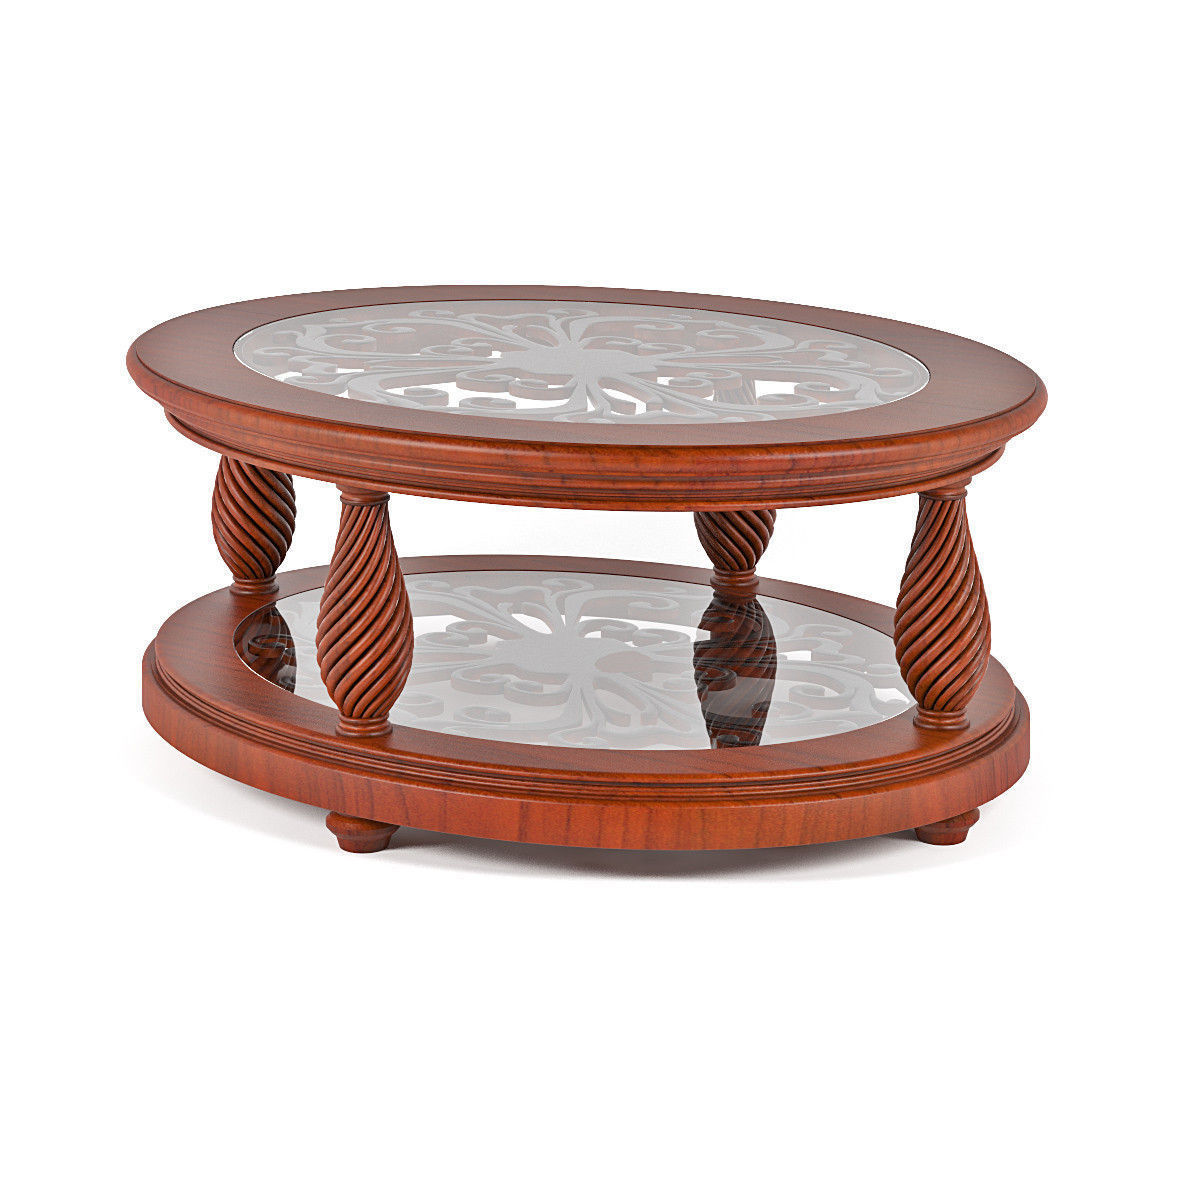 classic oval coffee table glass top 3d model cgtrader